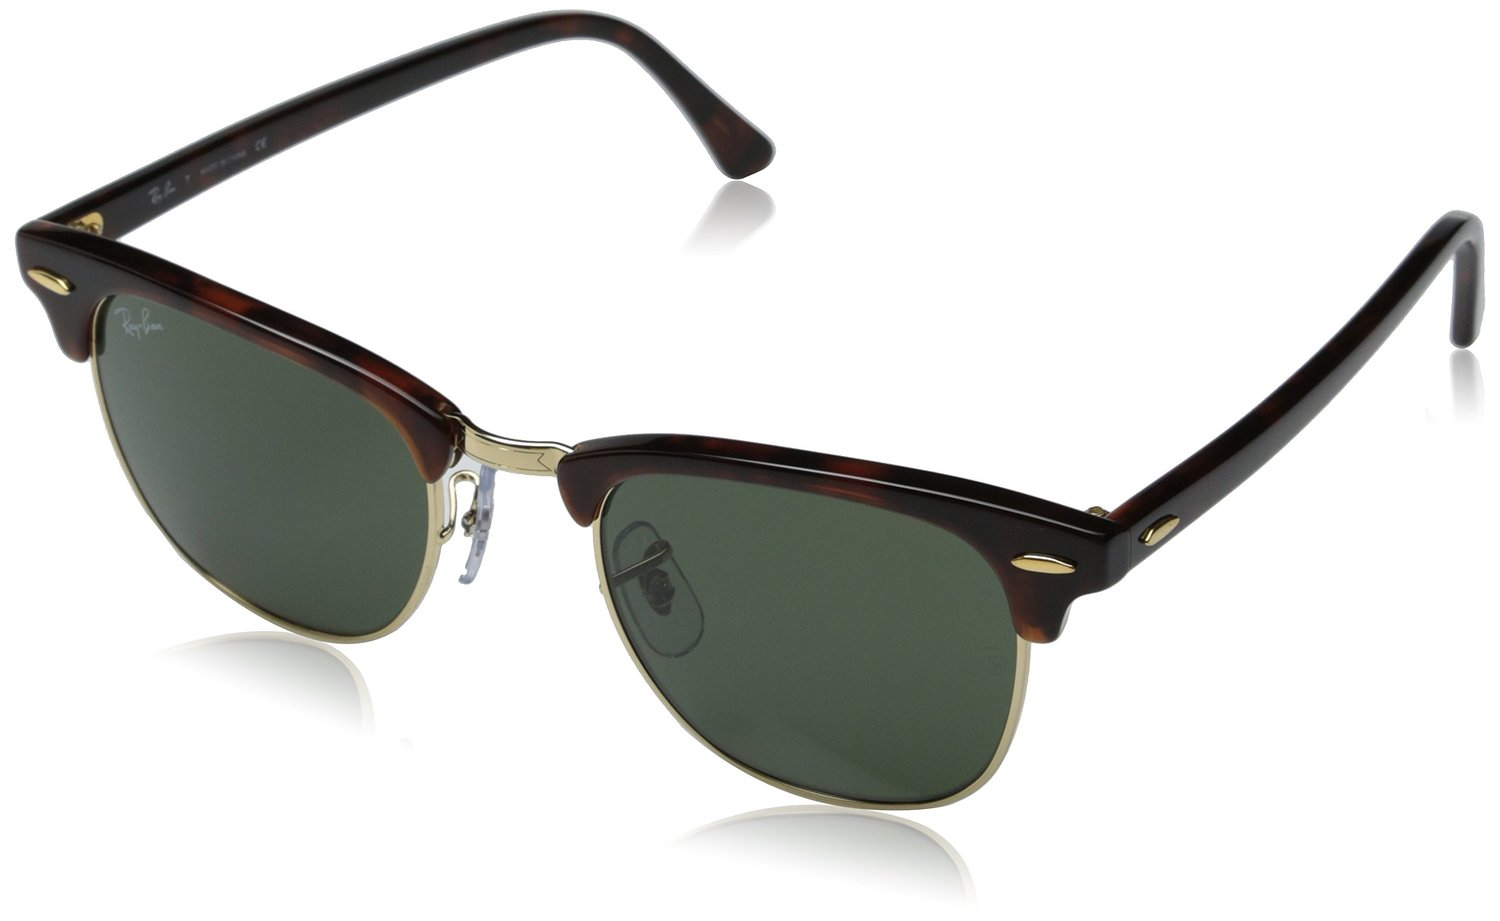 3016 w0366  ray ban sunglasses Archives